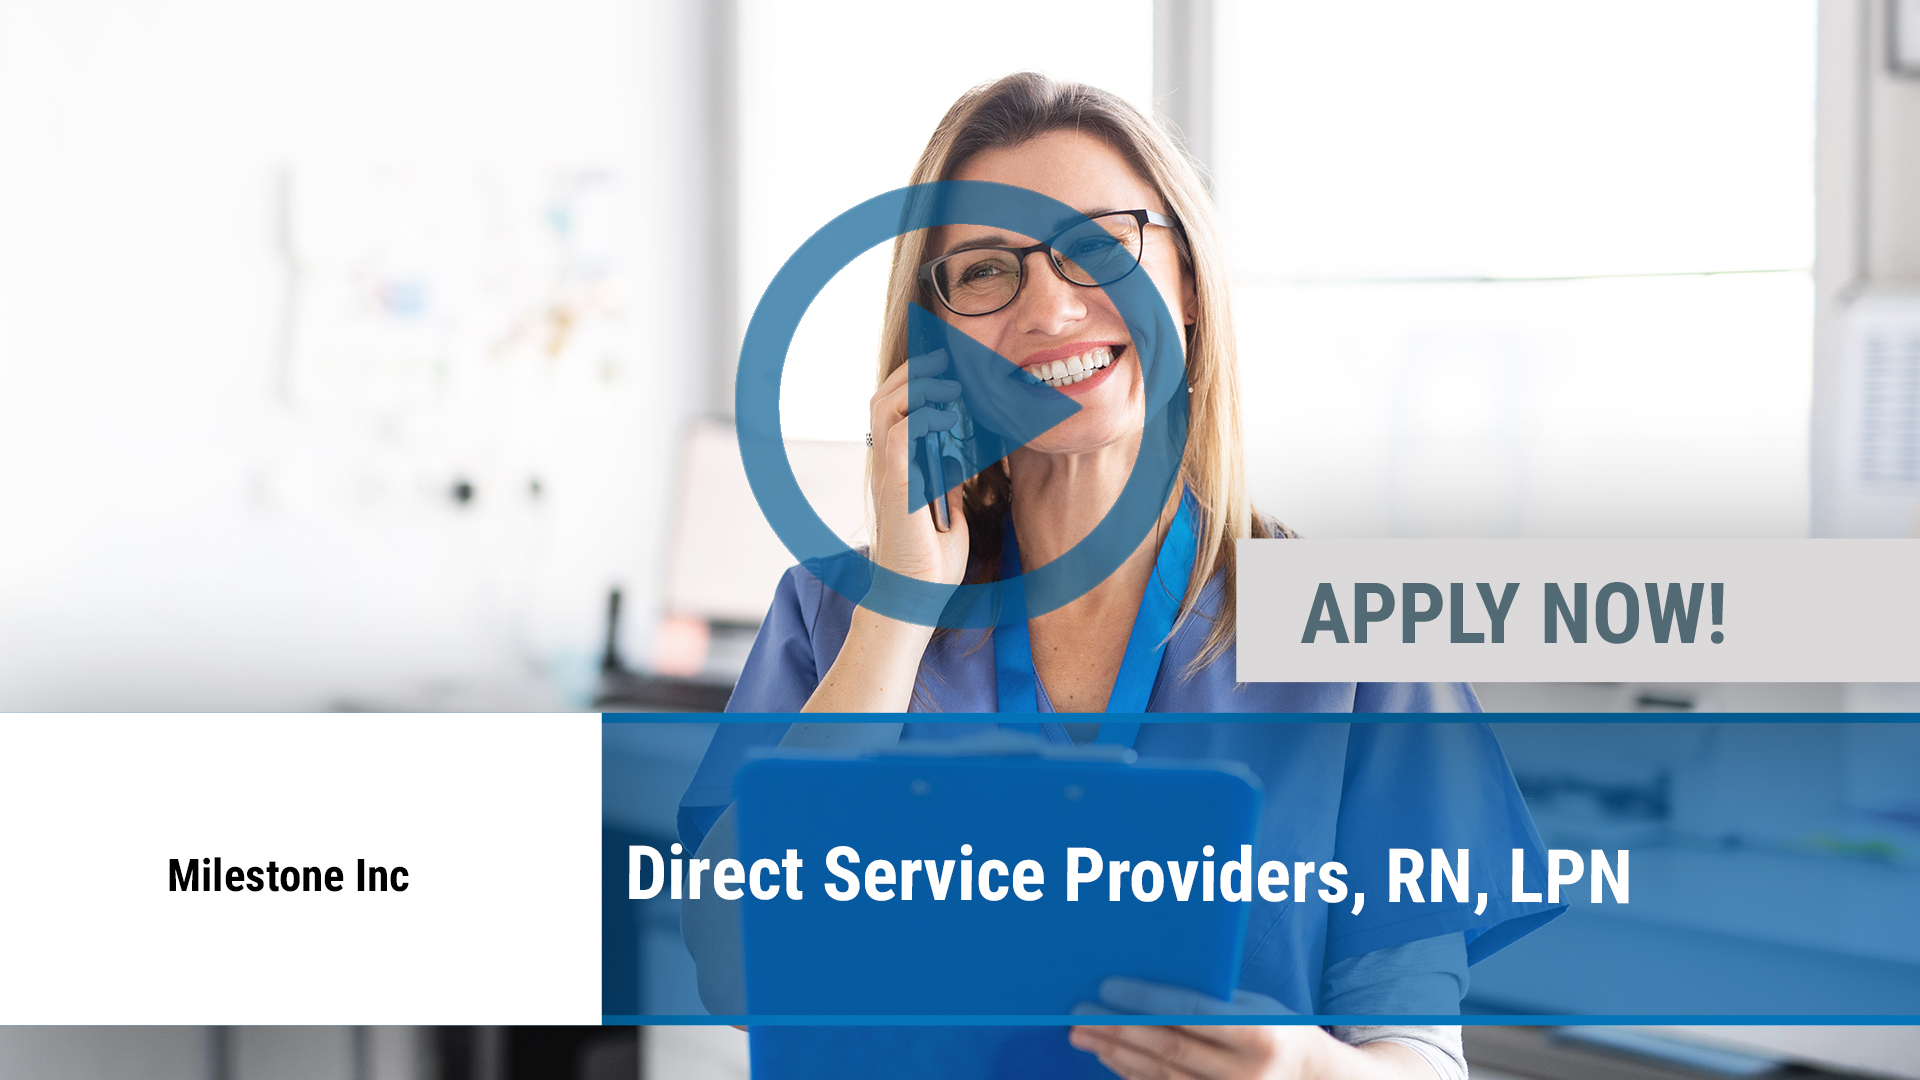 Watch our careers video for available job opening Direct Service Providers, RN, LPN in Rockford, IL